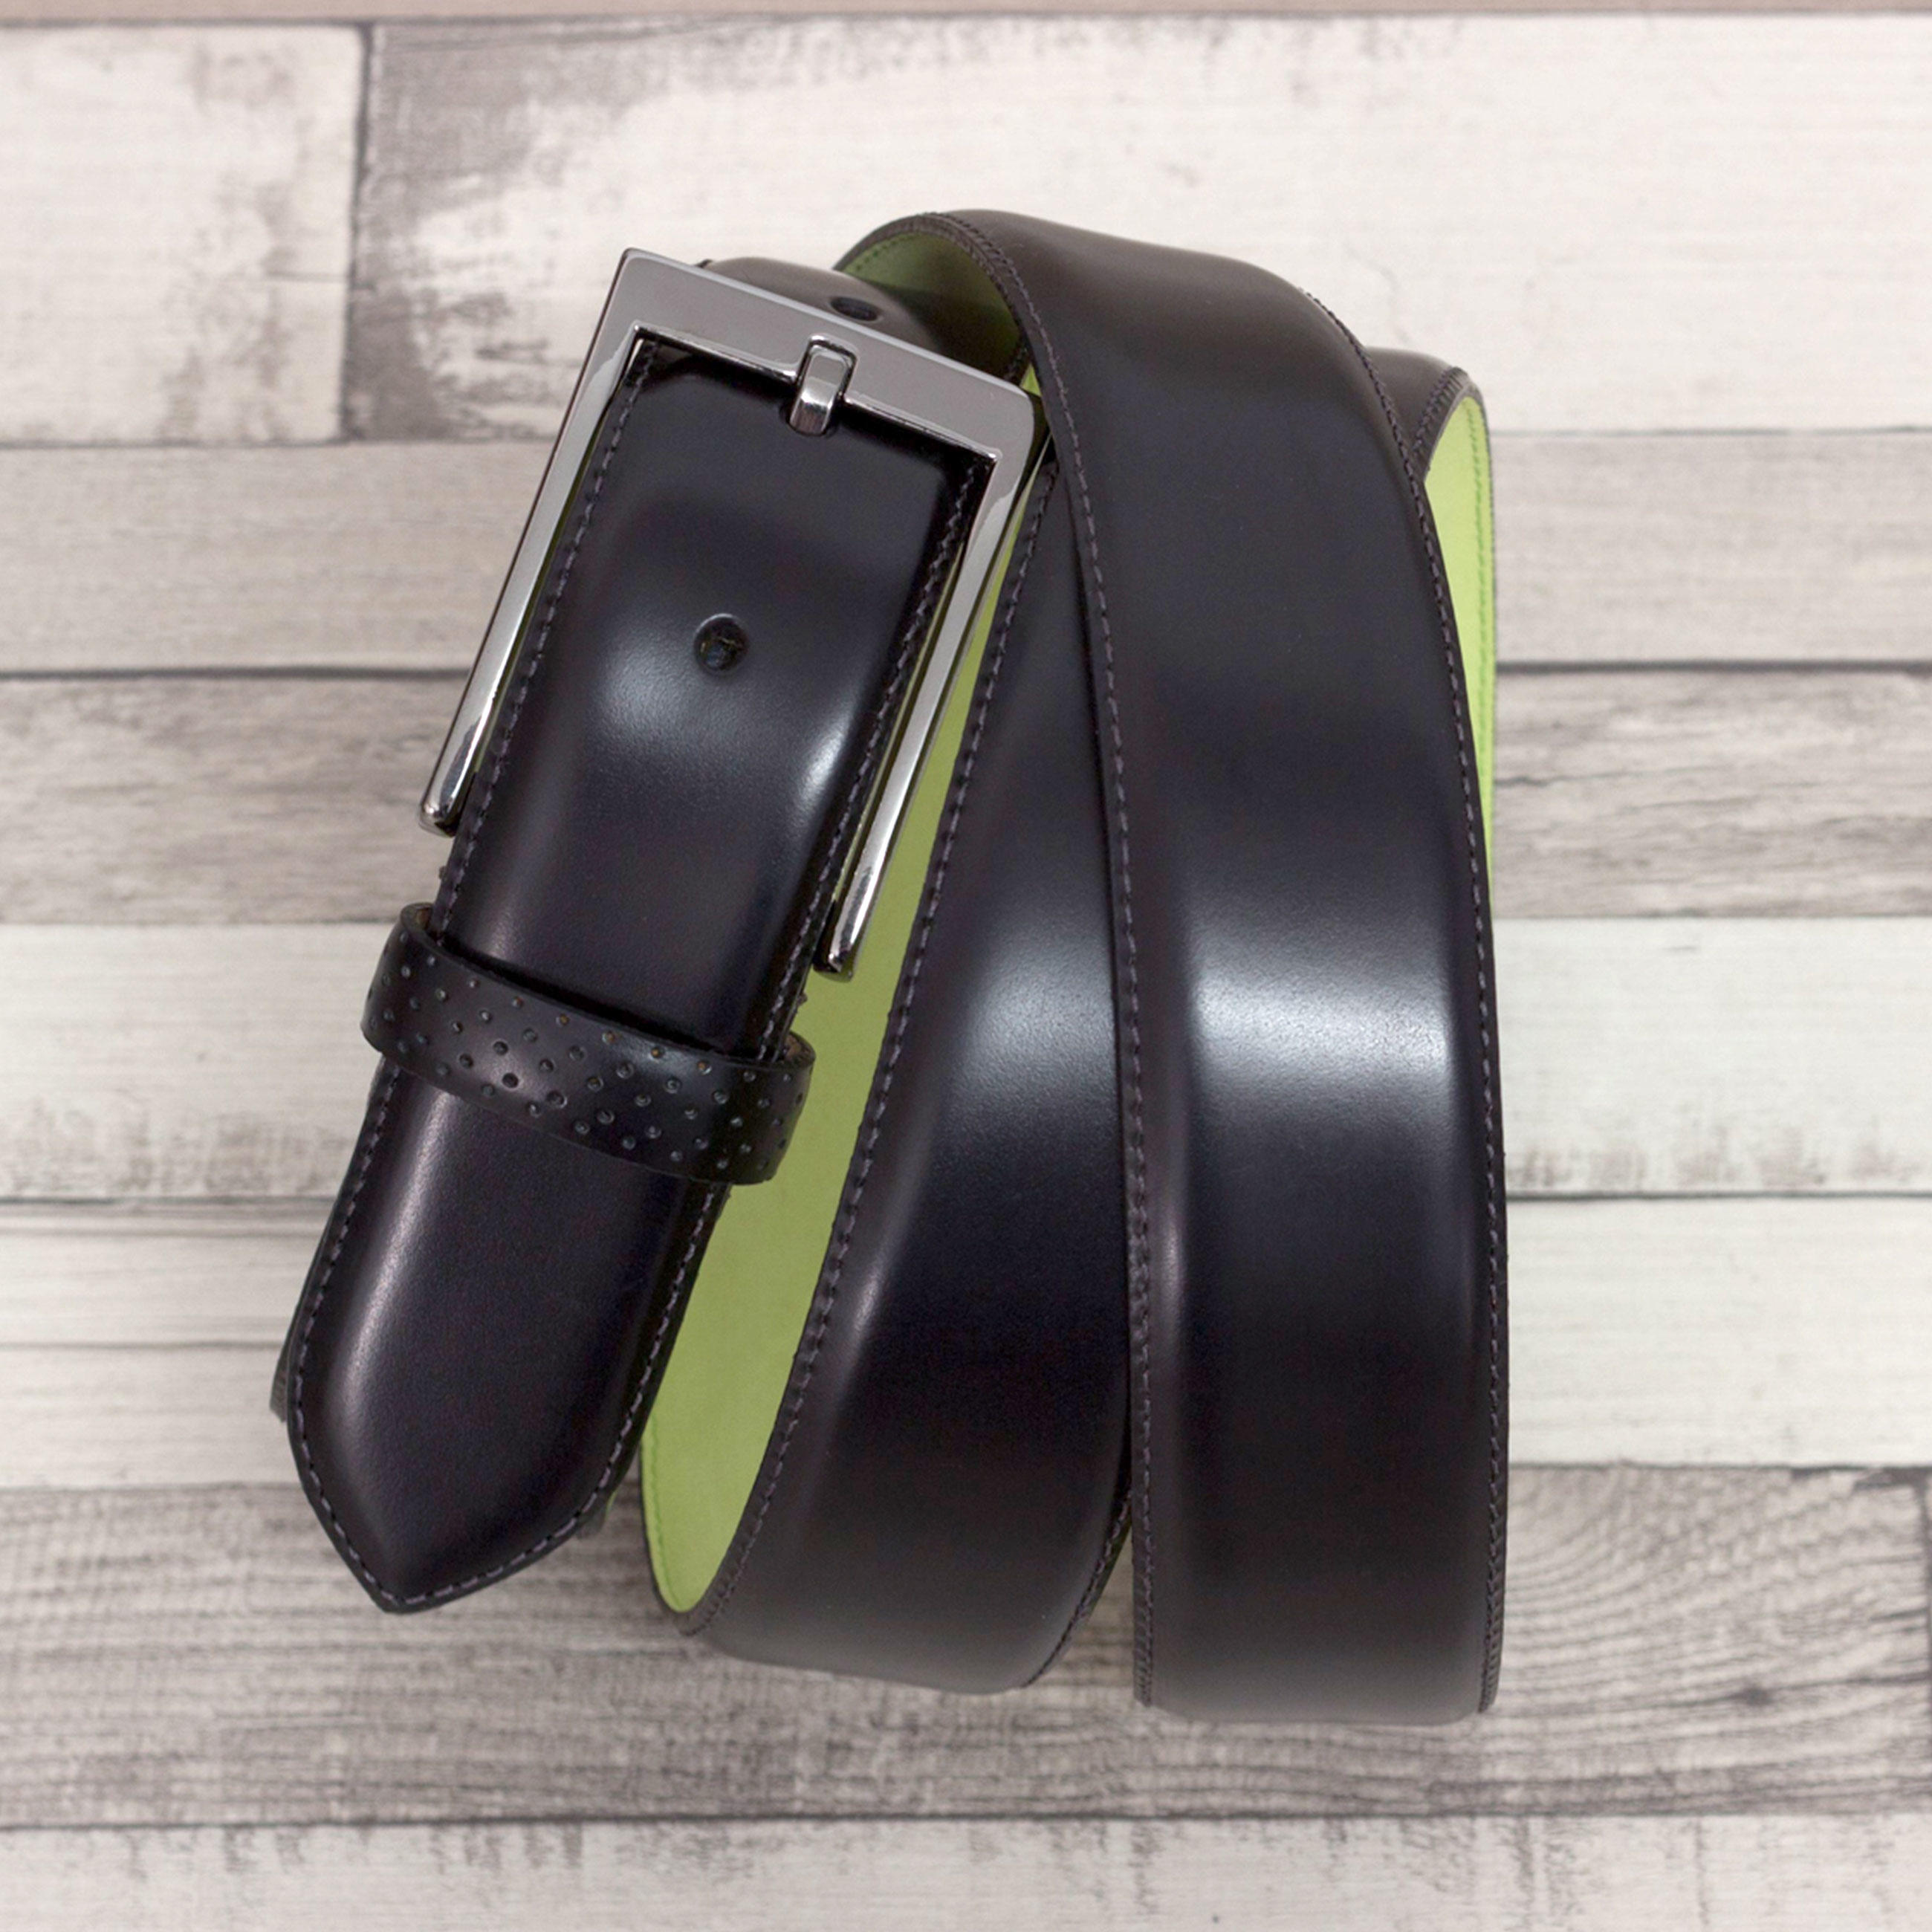 Manor of London 'Hamptons' Black Luxury Polished Calfskin Belt Top View